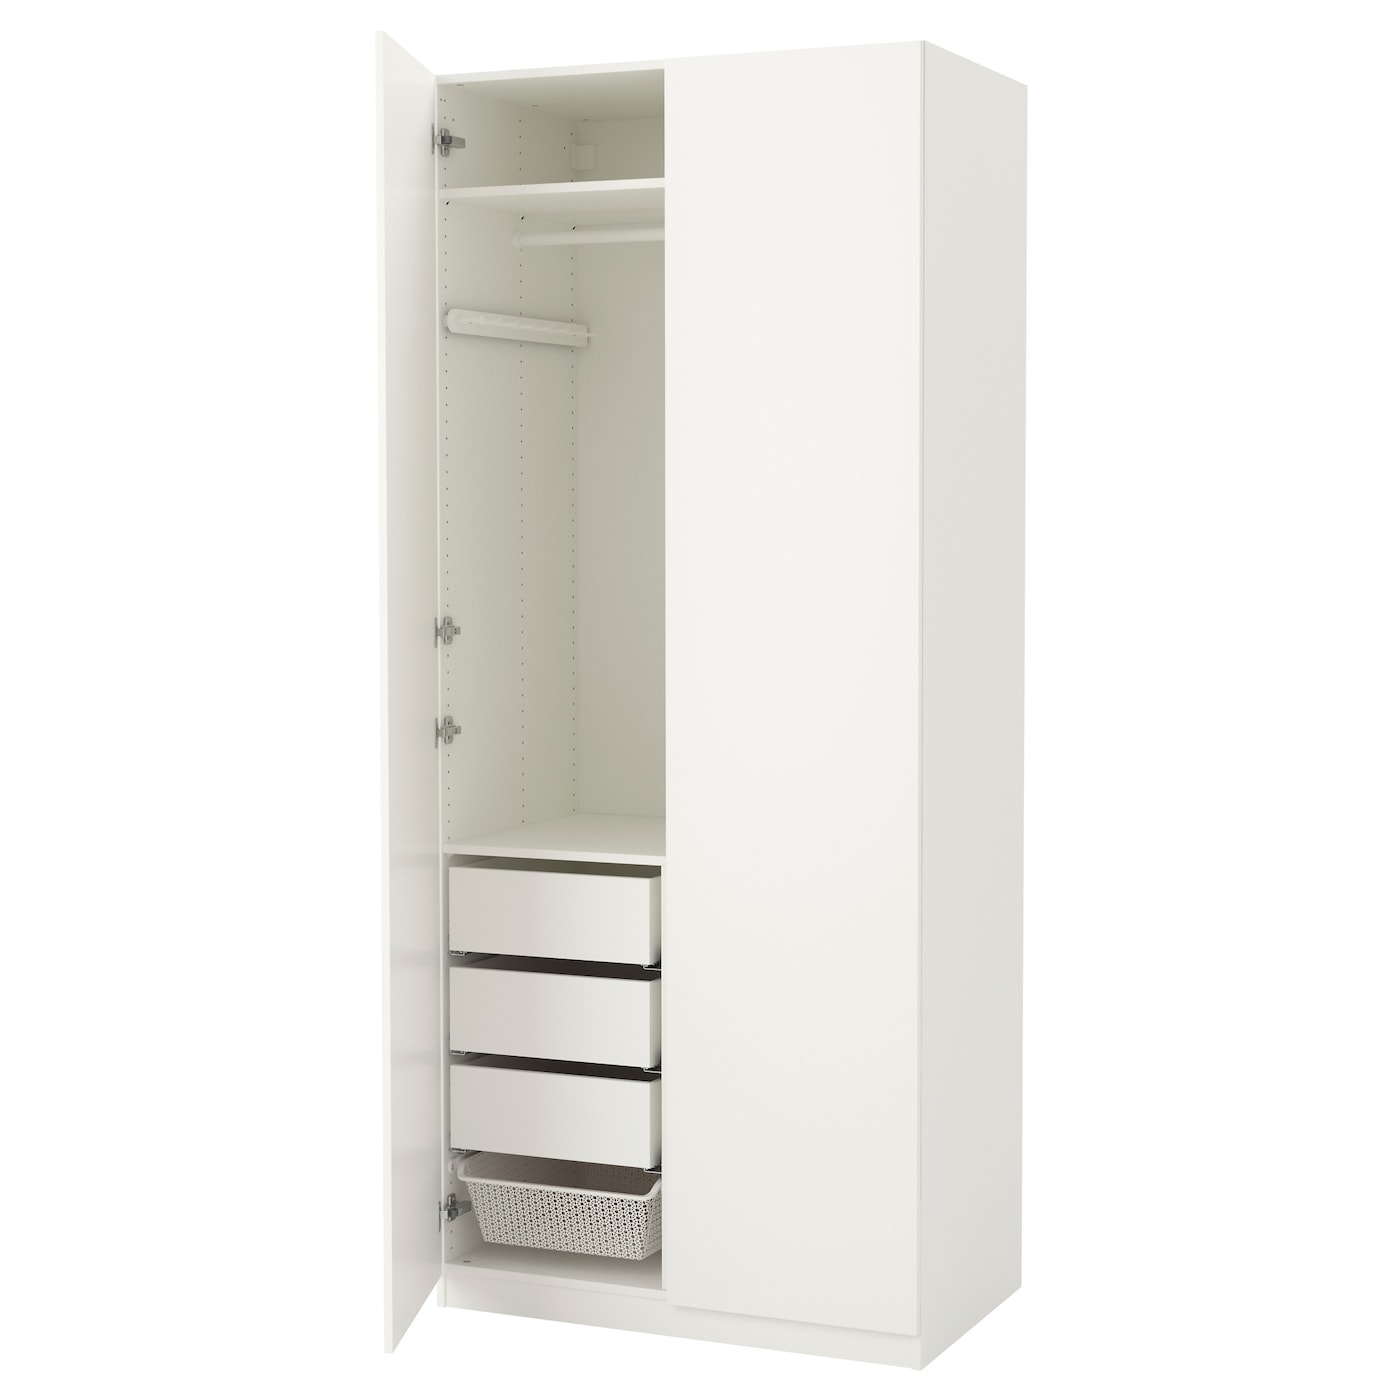 pax wardrobe white tanem white 100x60x236 cm ikea. Black Bedroom Furniture Sets. Home Design Ideas